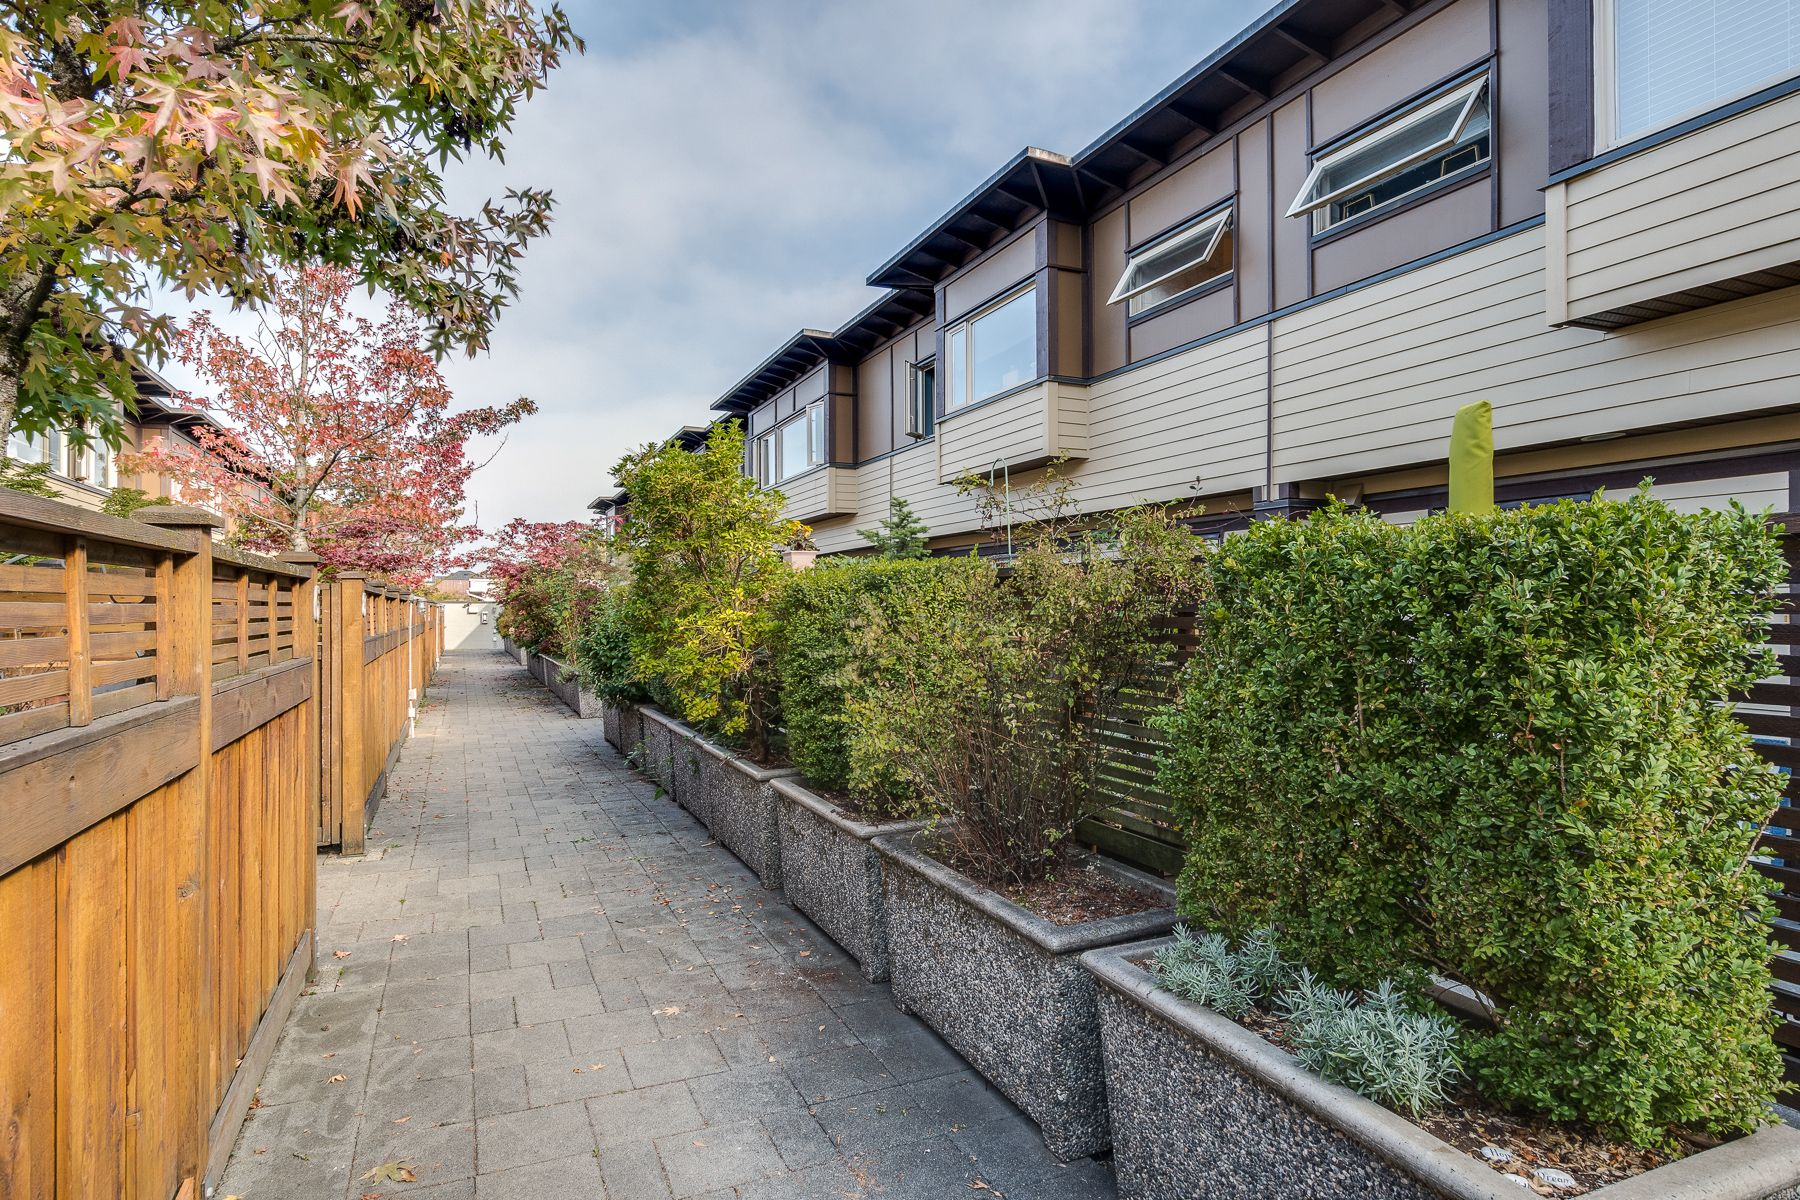 Photo 2: Photos: 7-2389 Charles St in Vancouver: Grandview Woodland Townhouse for sale (Vancouver East)